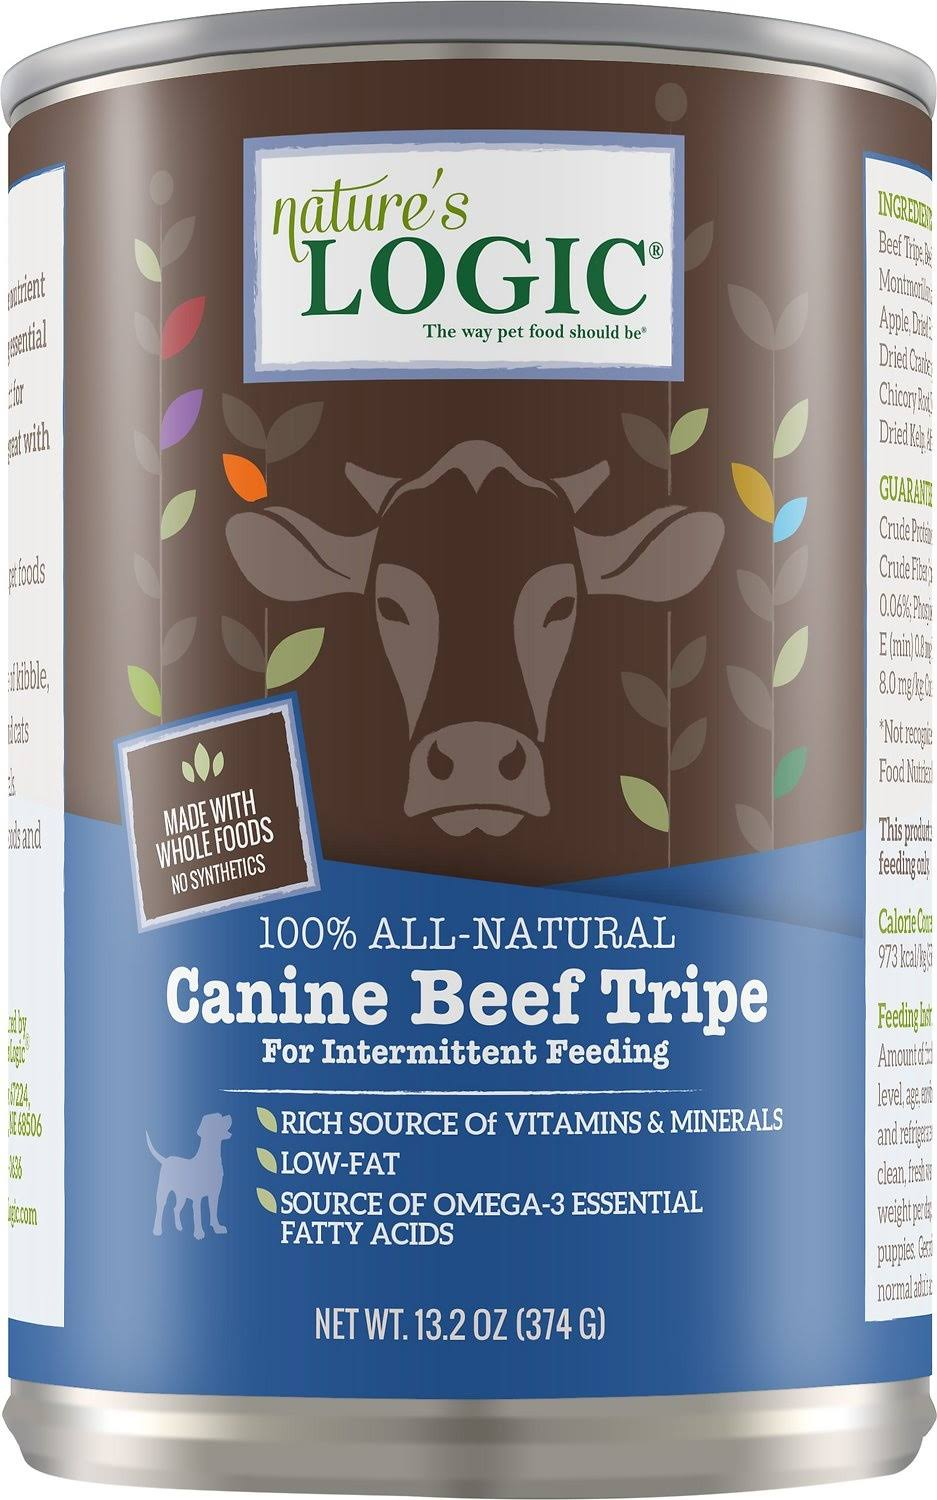 Nature's Logic Canine Beef Tripe Canned Dog Food